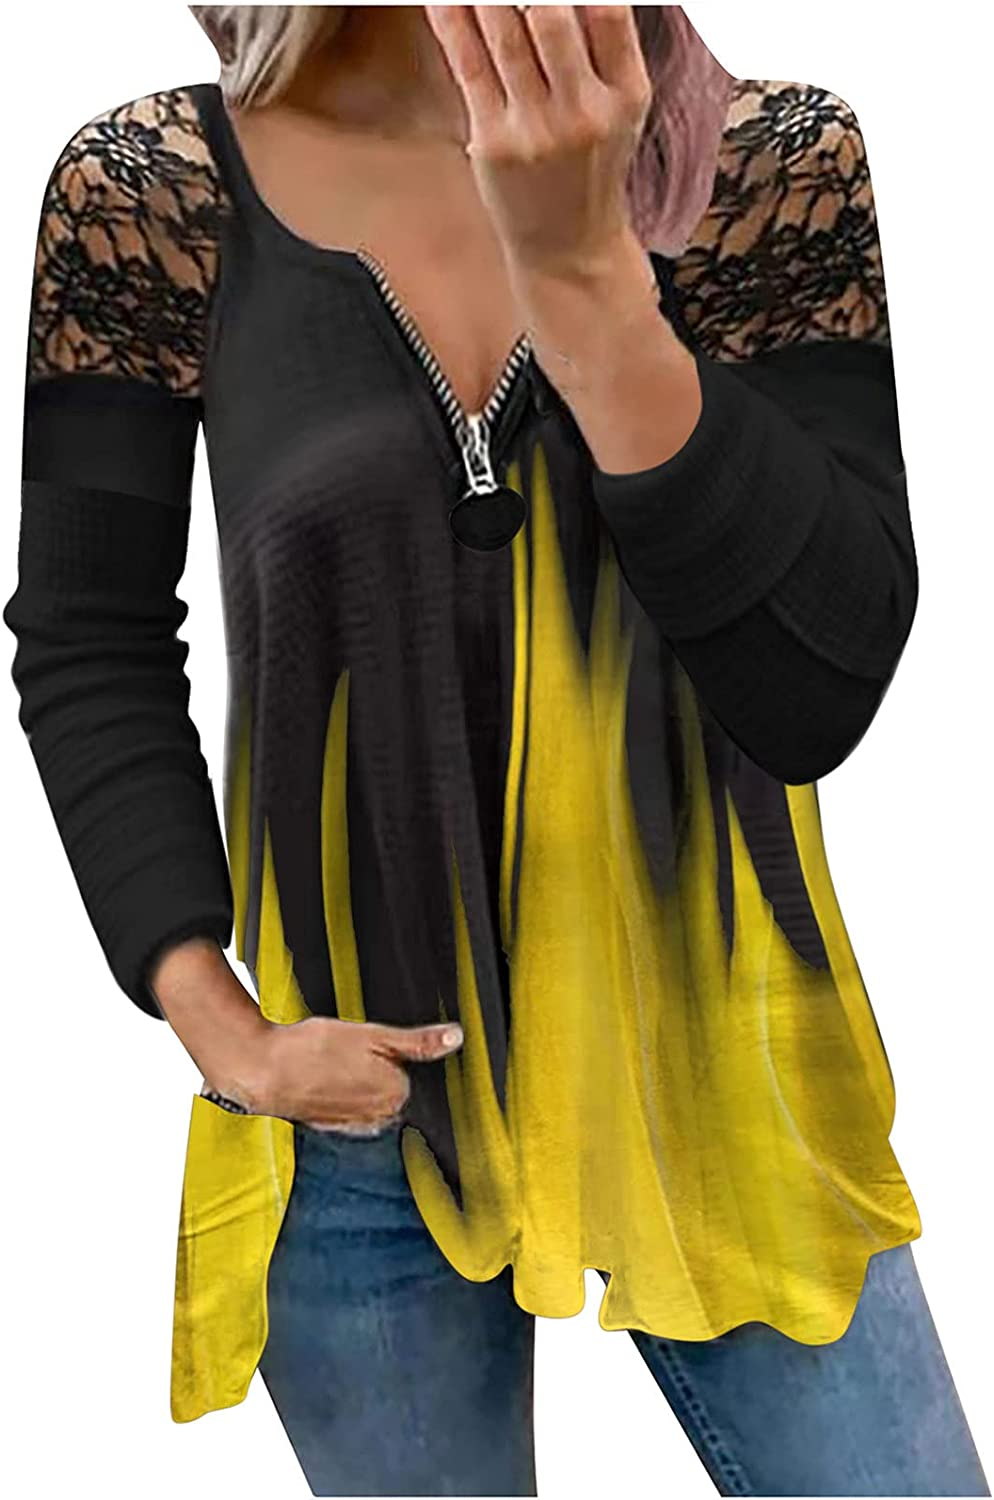 Womens Top Tie Dye Long Sleeve Strapless Casual T-Shirt Daily Loose Fit Lace Tunic Tops Zipper V-Neck Blouses